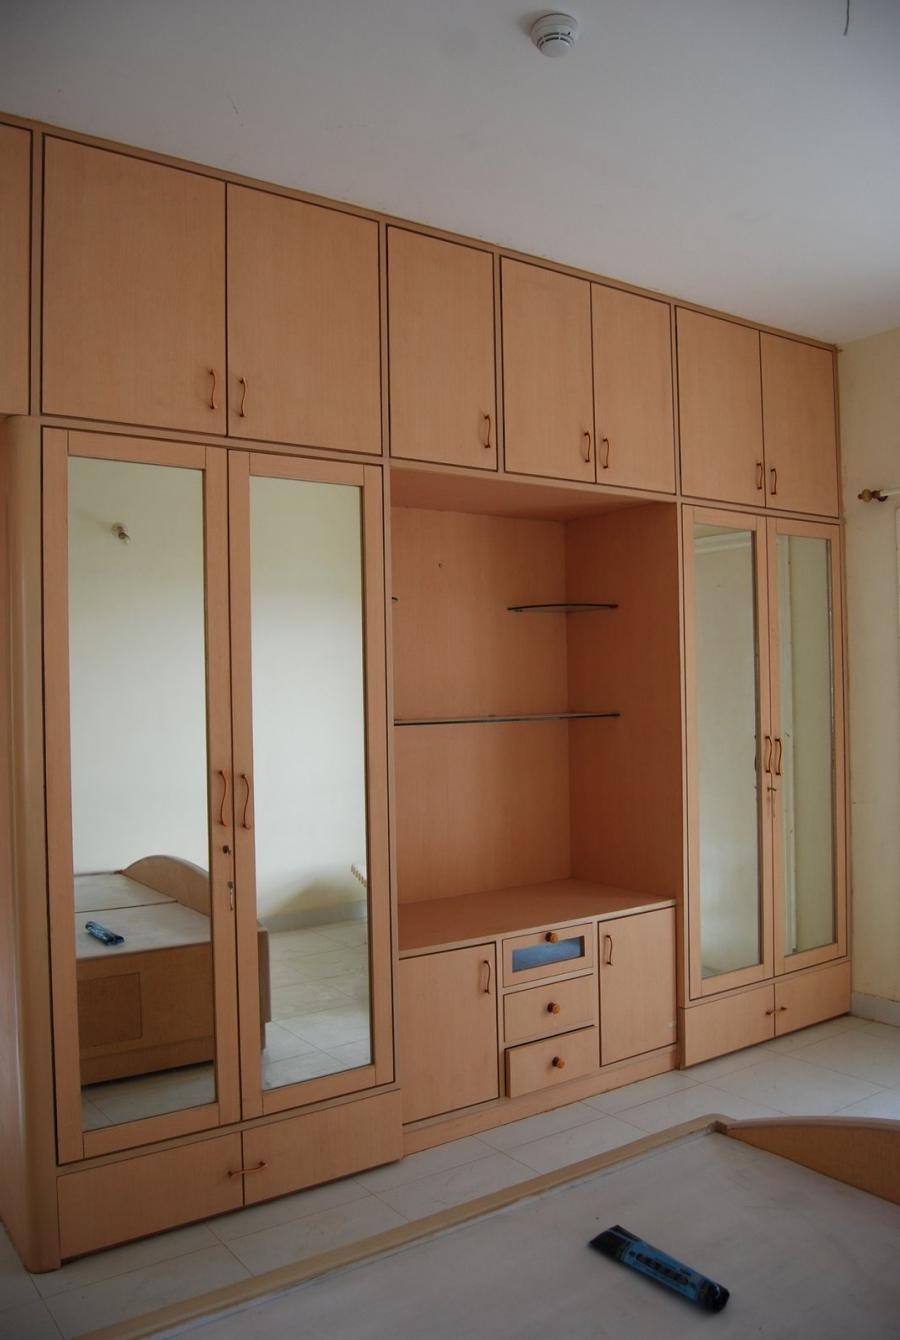 Interior design bedrooms cupboards photos for Interior cupboard designs bedrooms